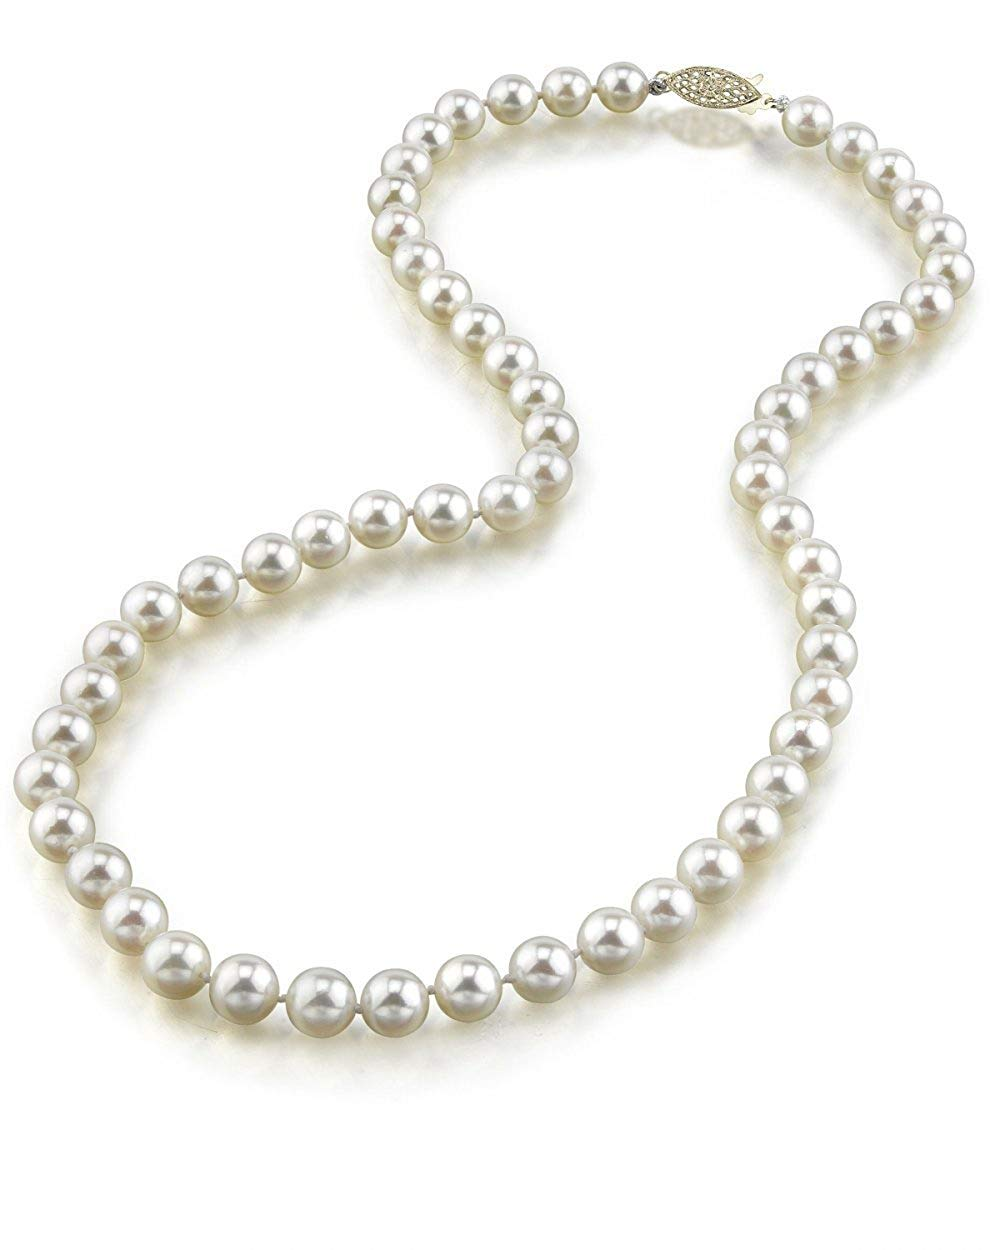 "14K Gold 6.5-7.0mm Japanese Akoya Saltwater White Cultured Pearl Necklace - AAA Quality, 16"" Choker Length"